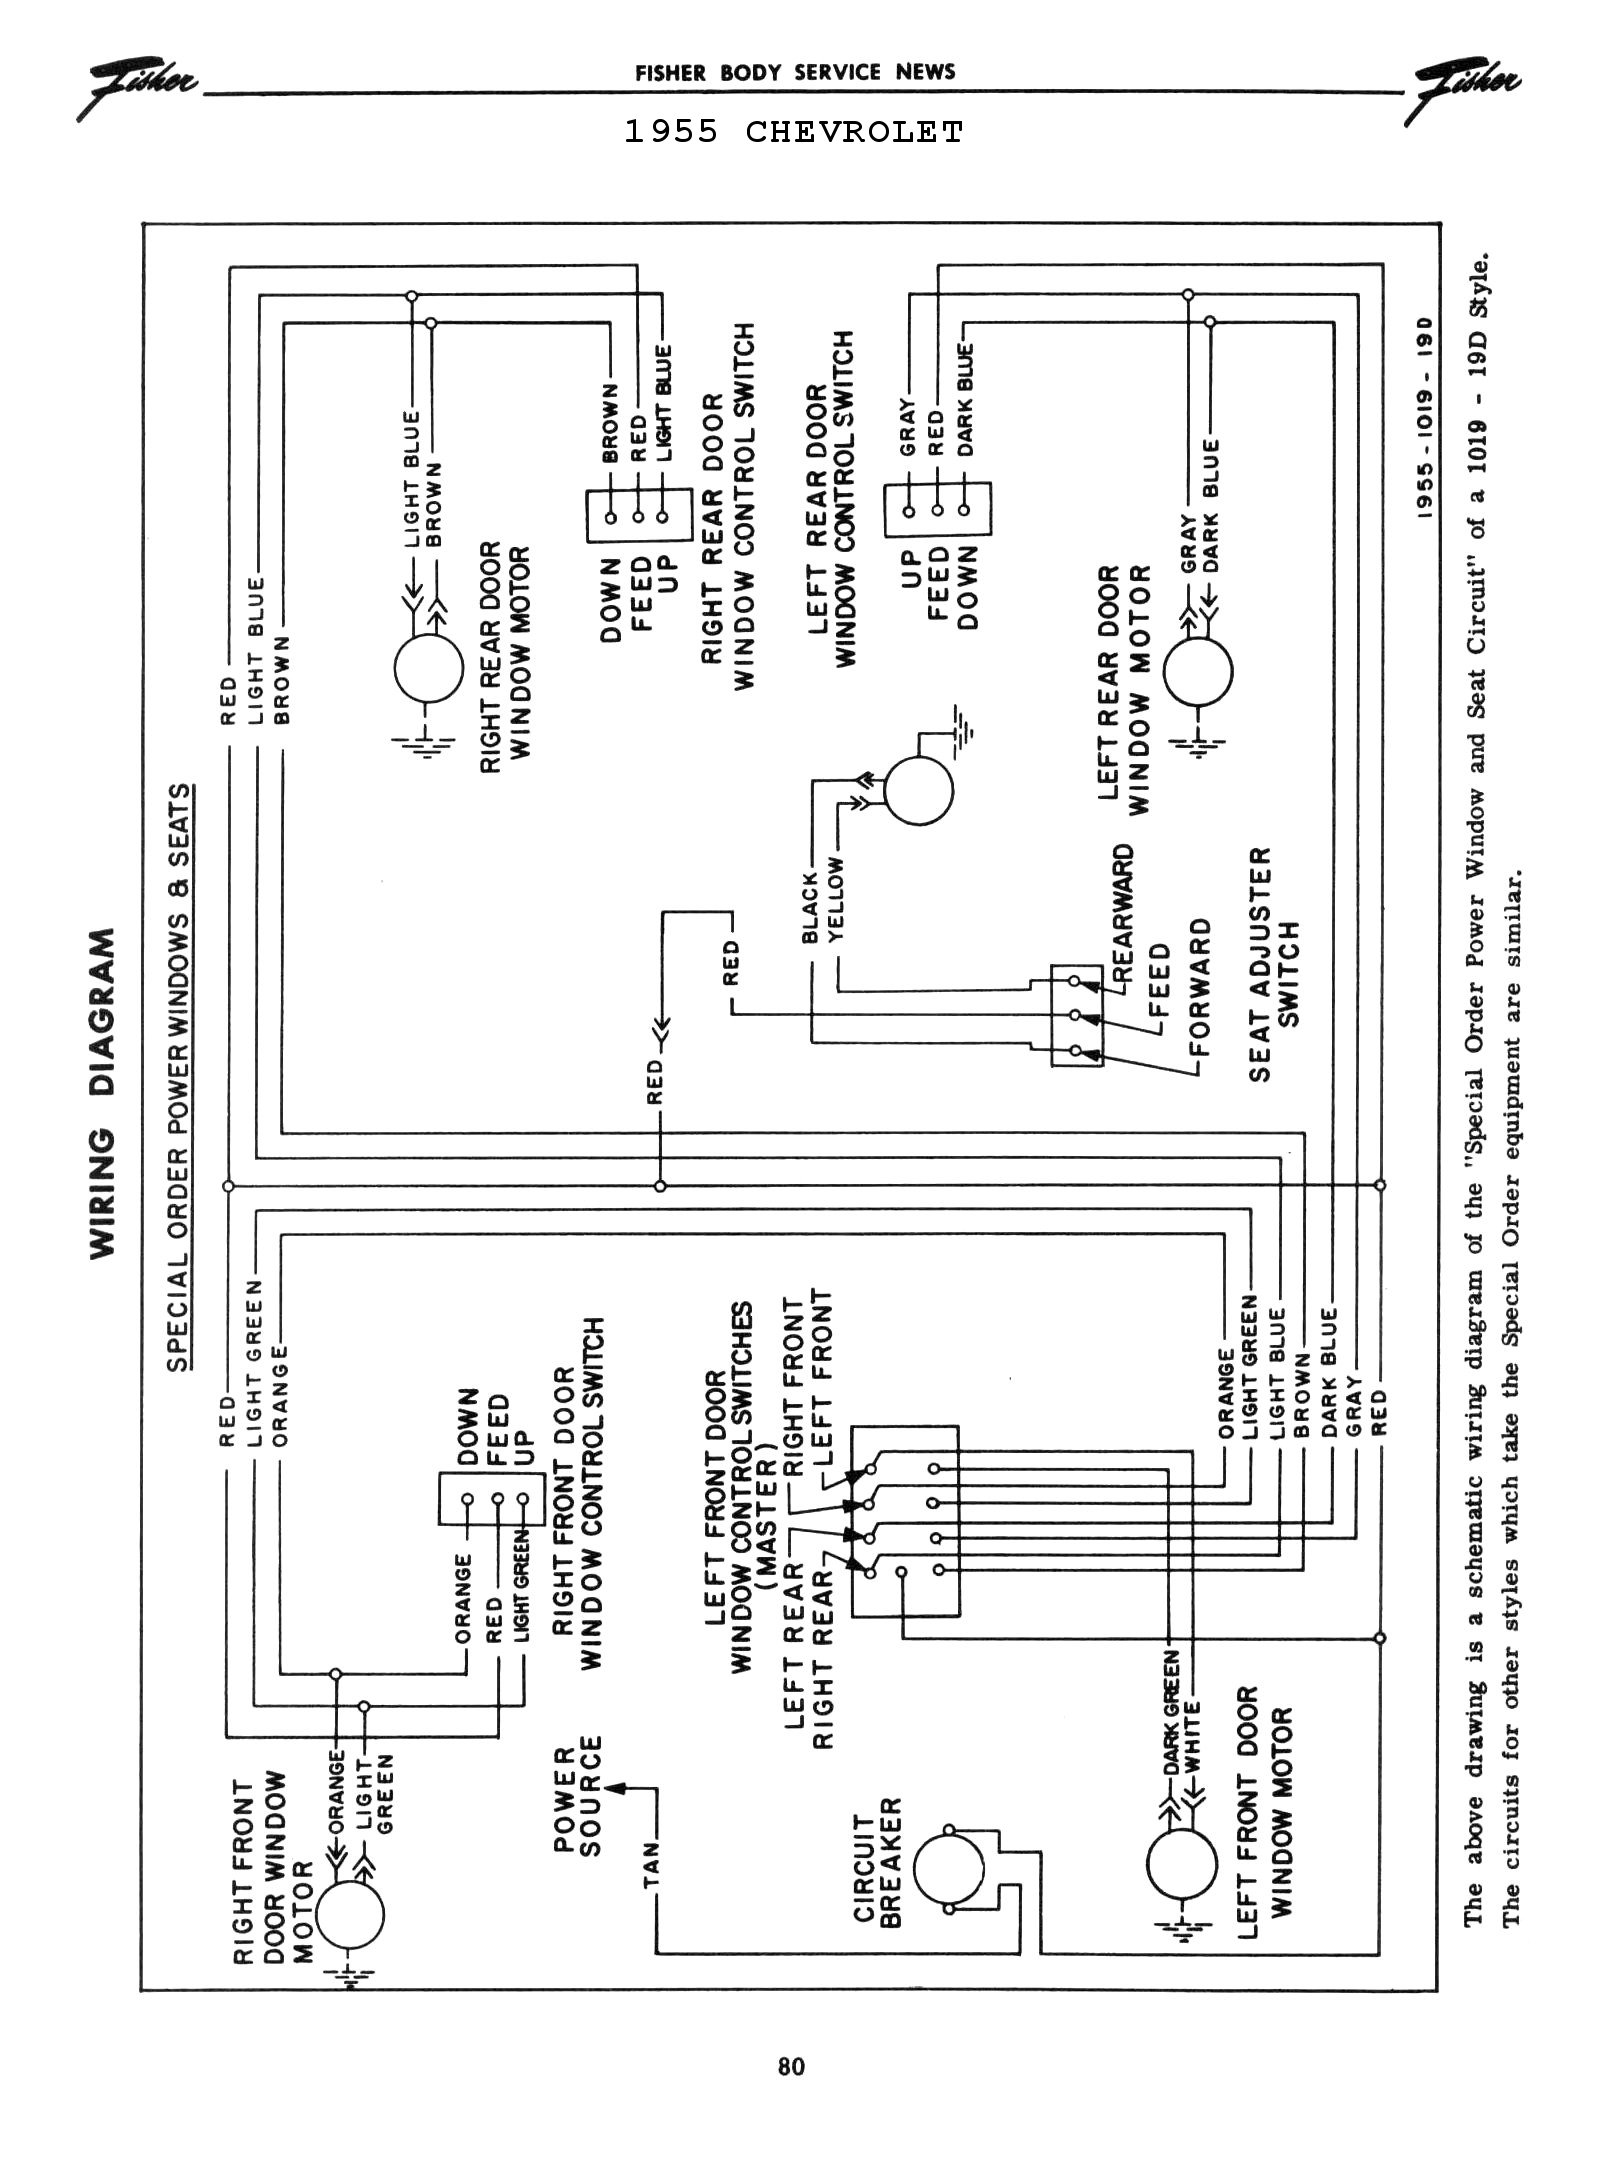 1955 Corvette Wiring Diagram Guide And Troubleshooting Of C5 Engine Images Gallery